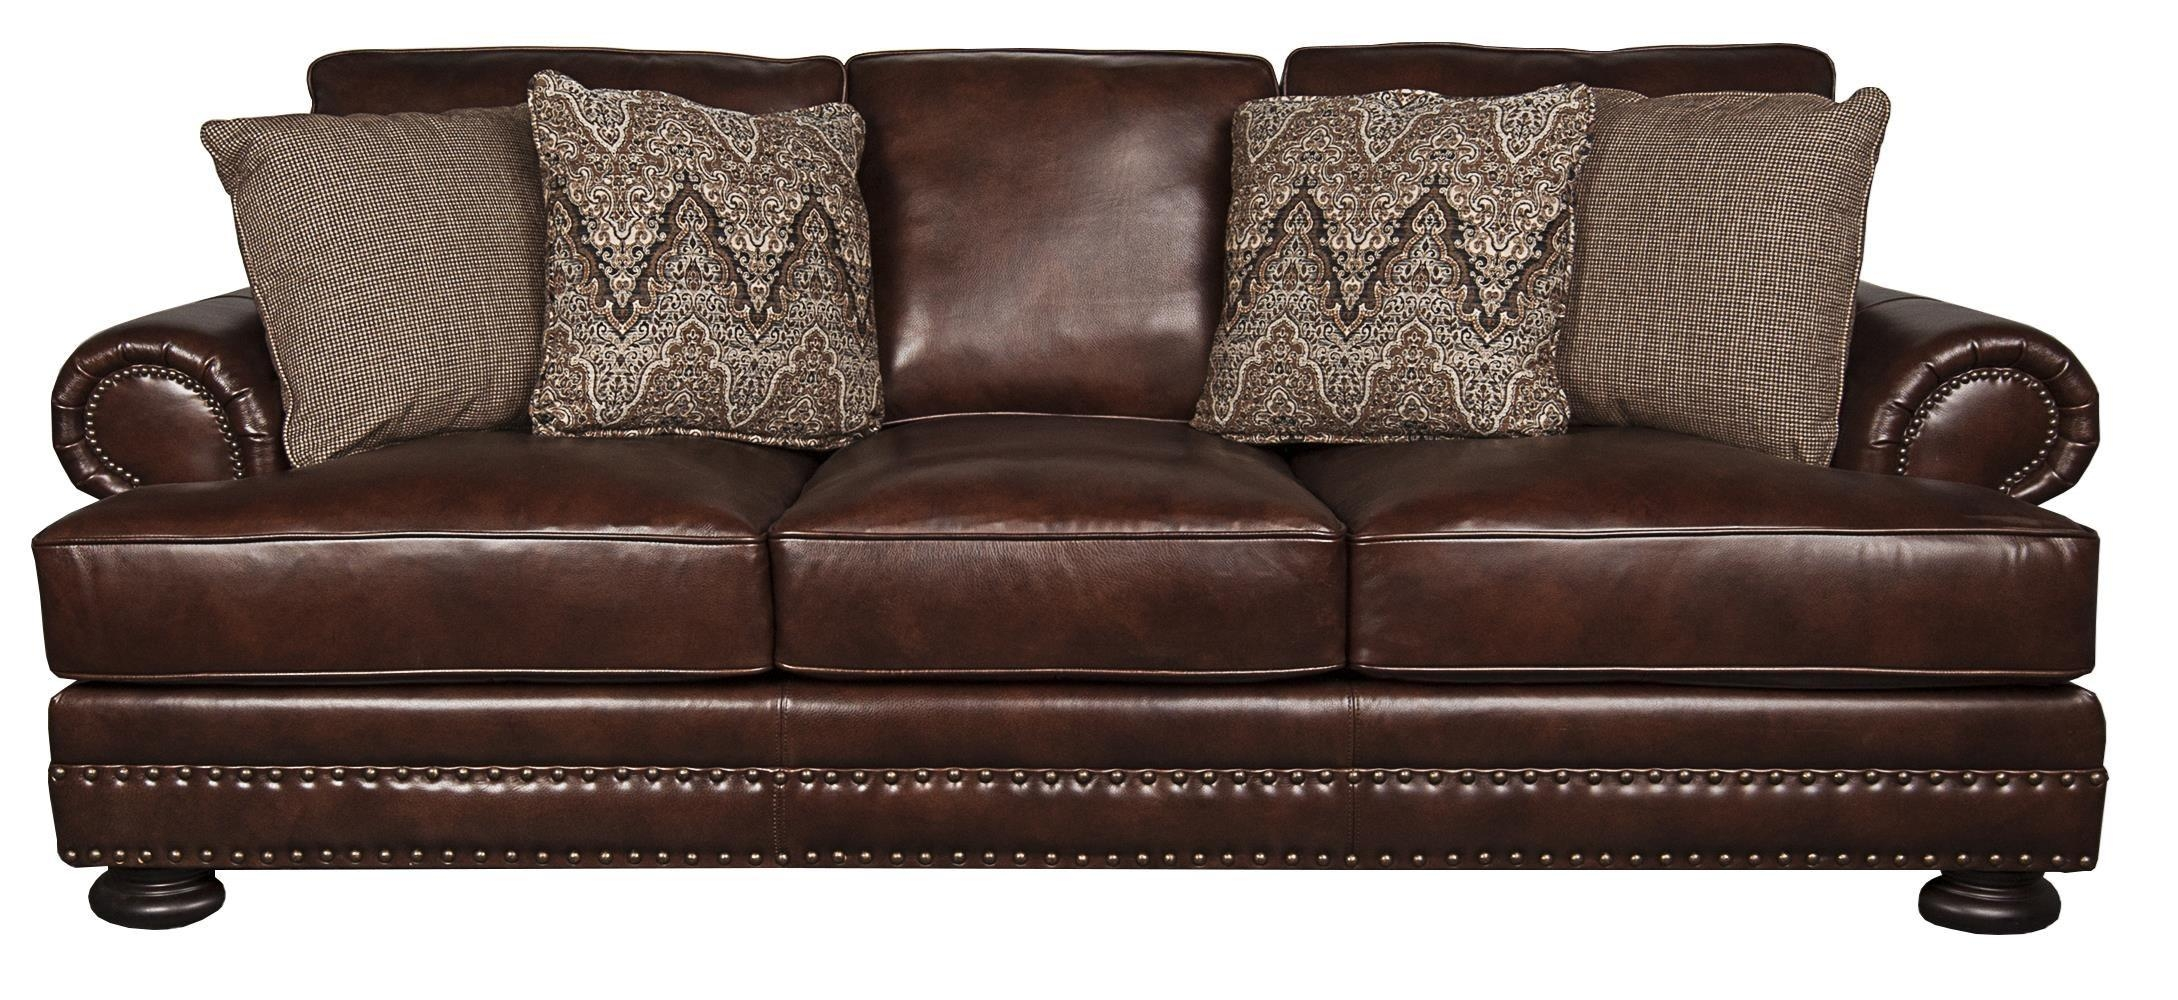 Featured Image of Foster Leather Sofas